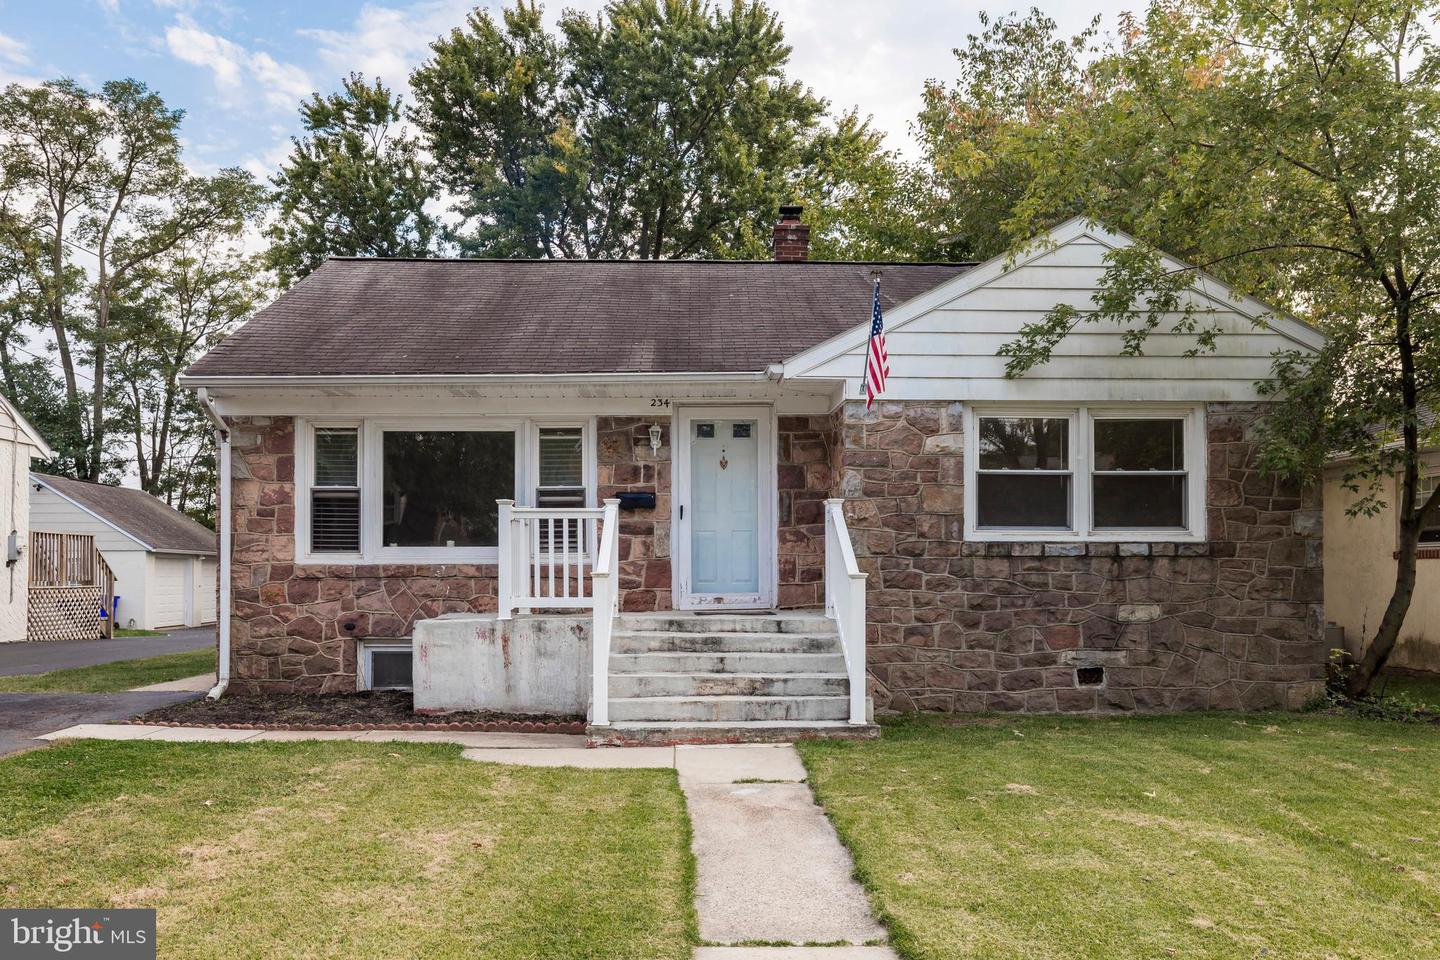 234 W King Street Pottstown, PA 19464